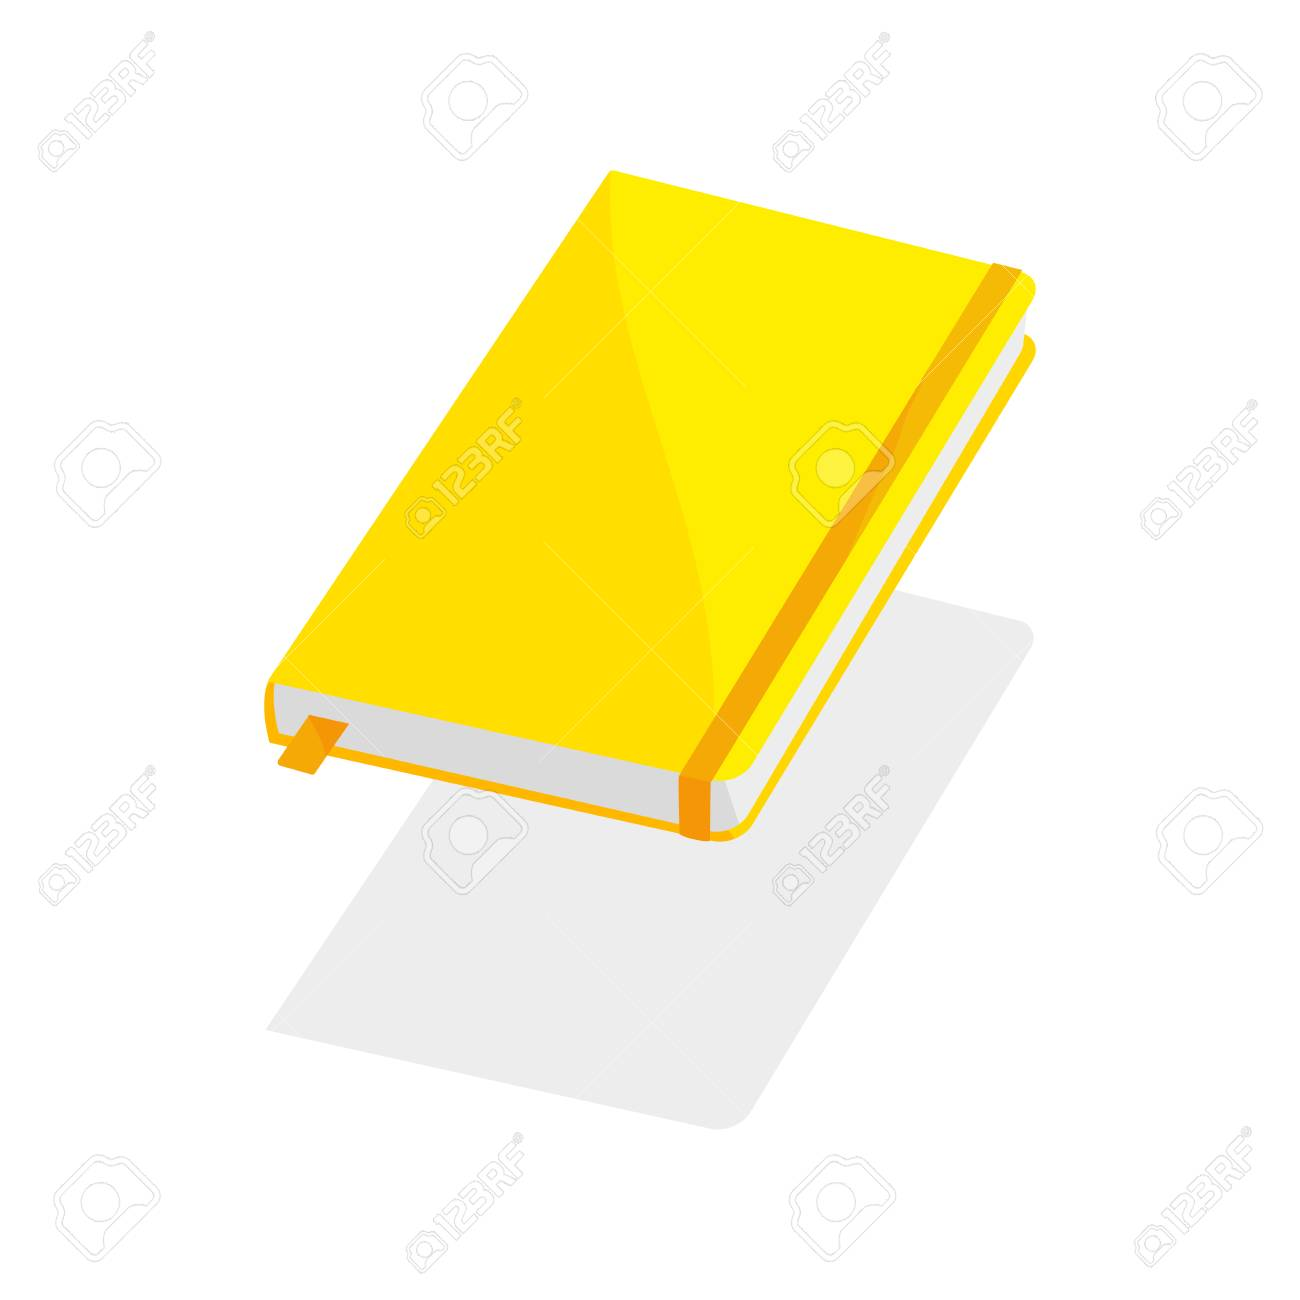 yellow notebook on white background blank paper cover vector